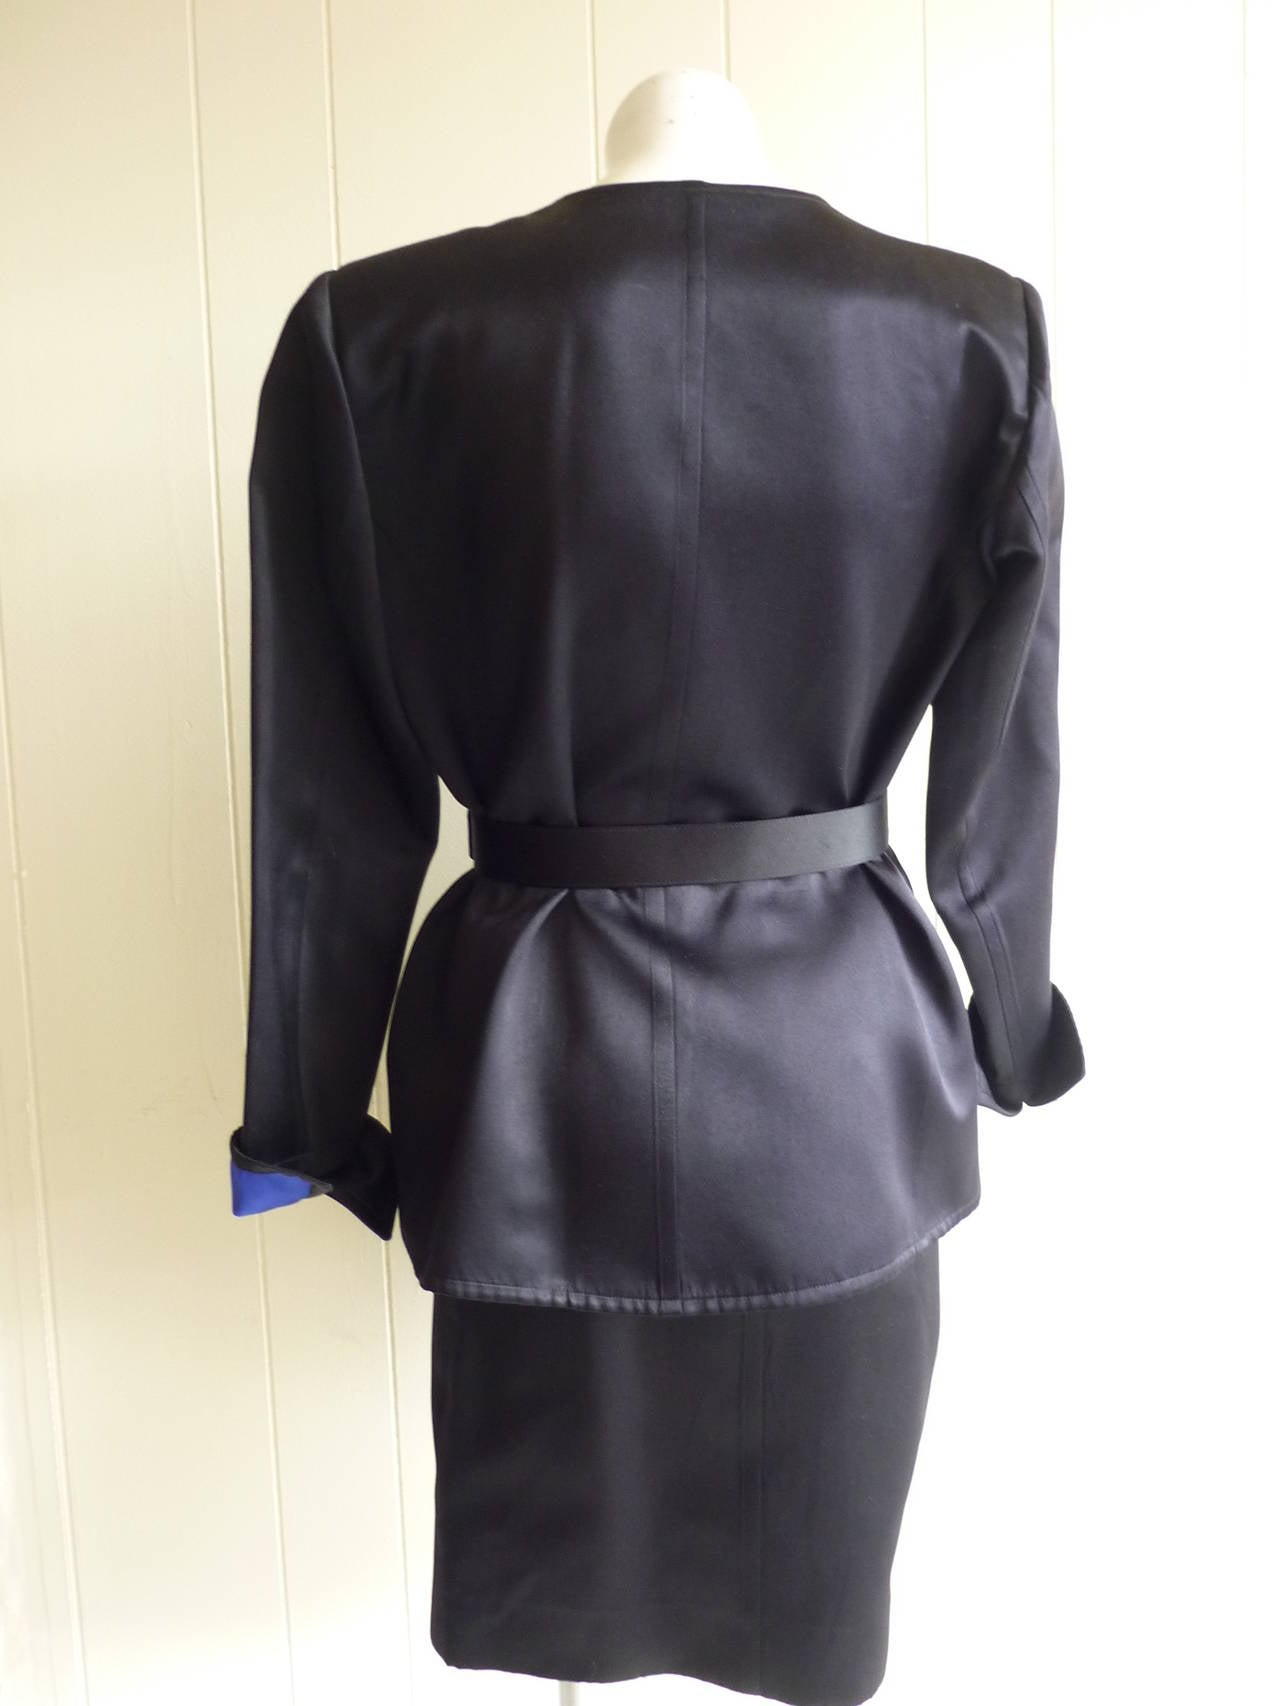 Yves Saint Laurent RG Black Peau De Soie Skirt Suit, 1980s In Good Condition For Sale In Port Hope, ON